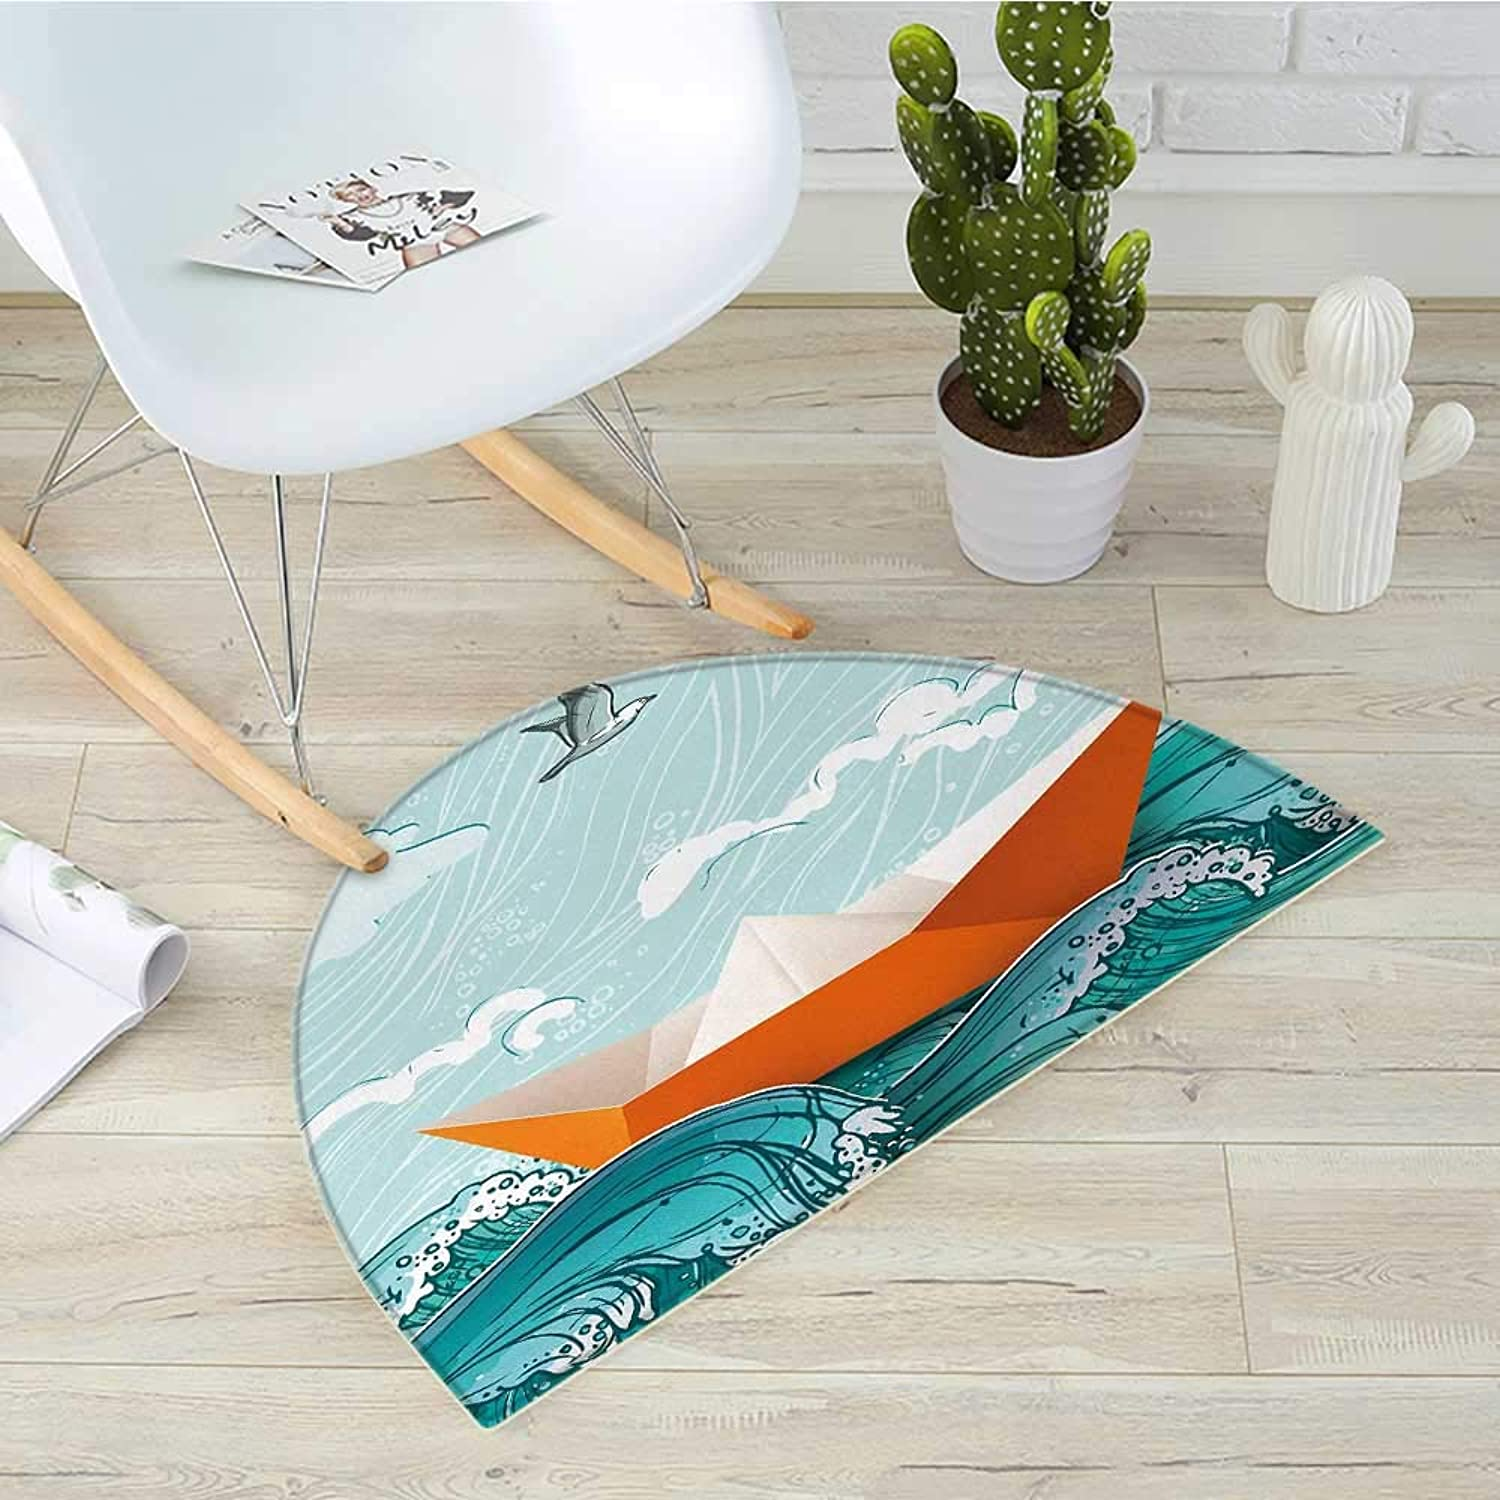 Ocean Half Round Door mats Navy Sealife with Waves and a Paper Sail Ship with Travel Quote Image Bathroom Mat H 39.3  xD 59  orange Sky bluee and White